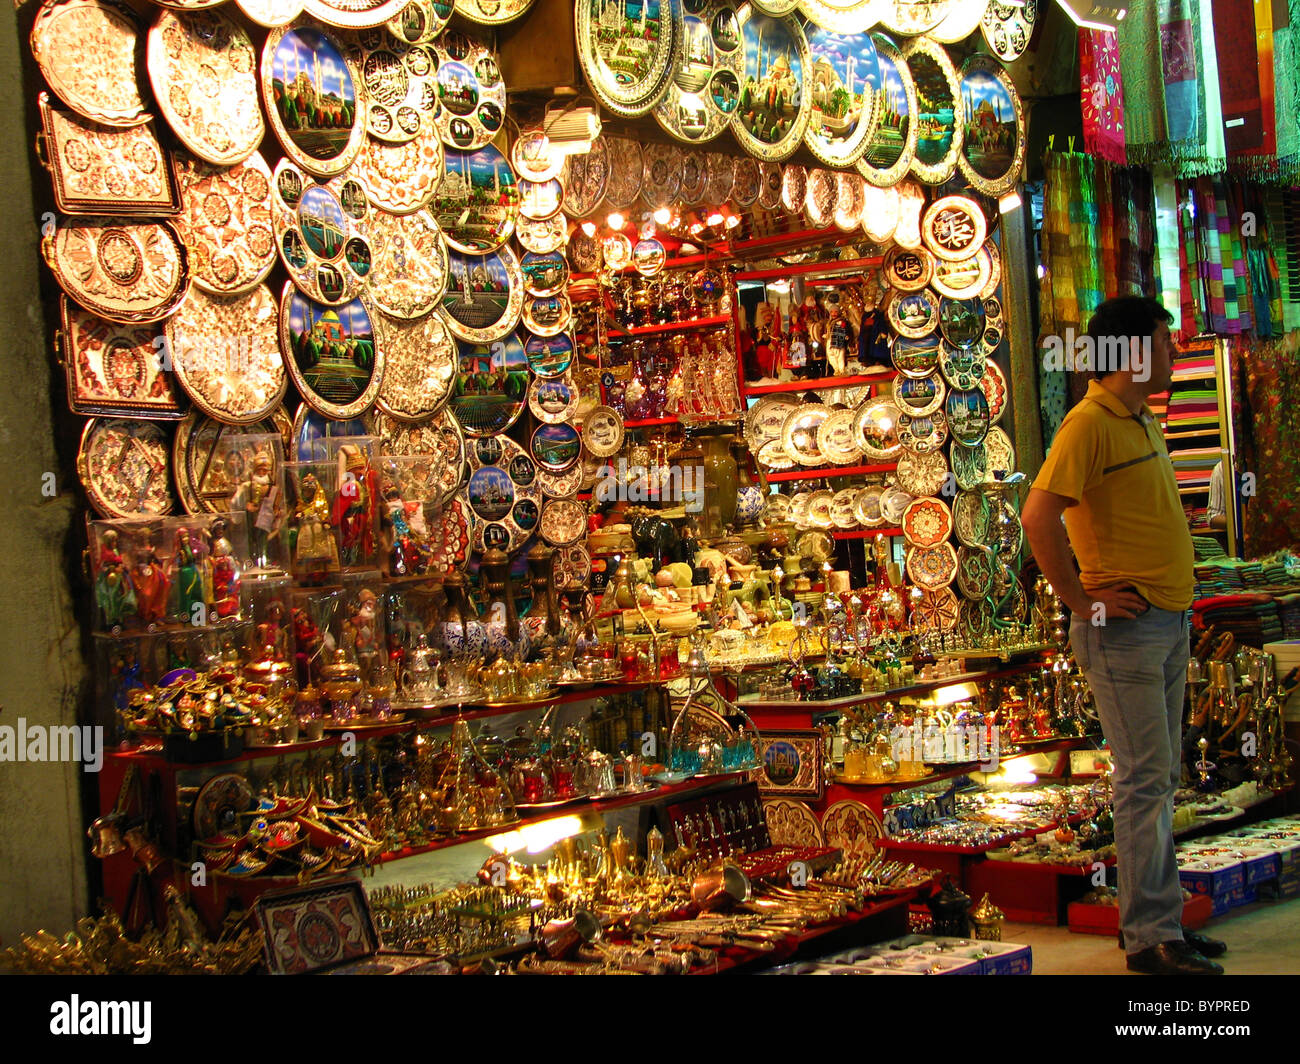 The Grand Bazaar is the ideal place for shopping in Istanbul. The bazaar is a big maze of shops, stores, and vendors for visitors to explore. Stocked with tea, jewelry, rugs, souvenirs, spices, and Turkish delights, the bazaar will provide just about anything tourists might want to find.